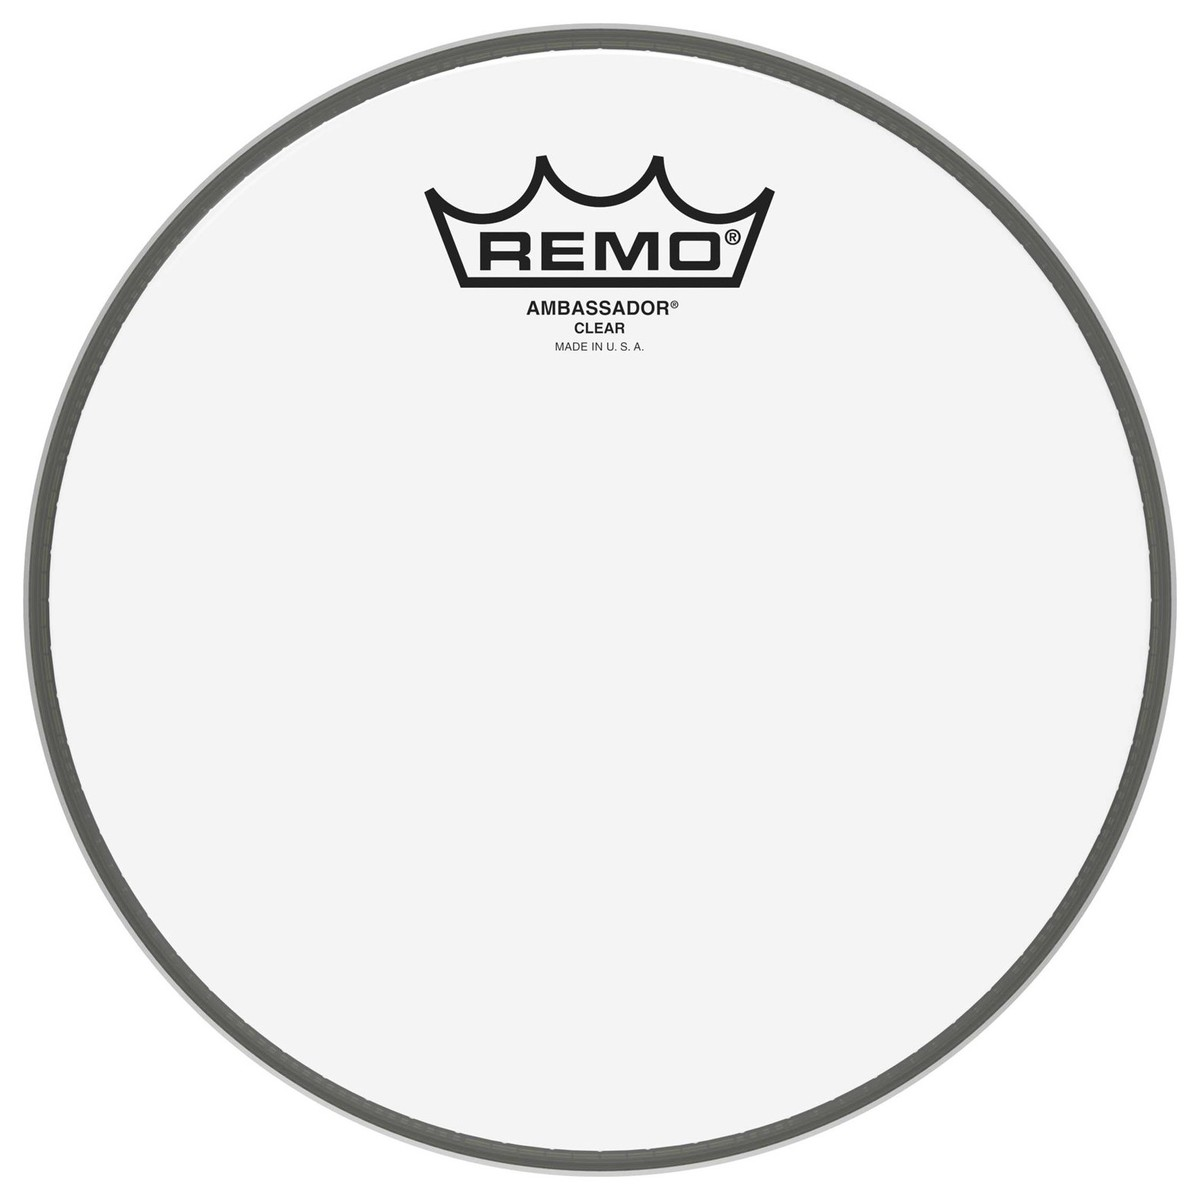 Remo Ambassador Clear 13 Drum Head